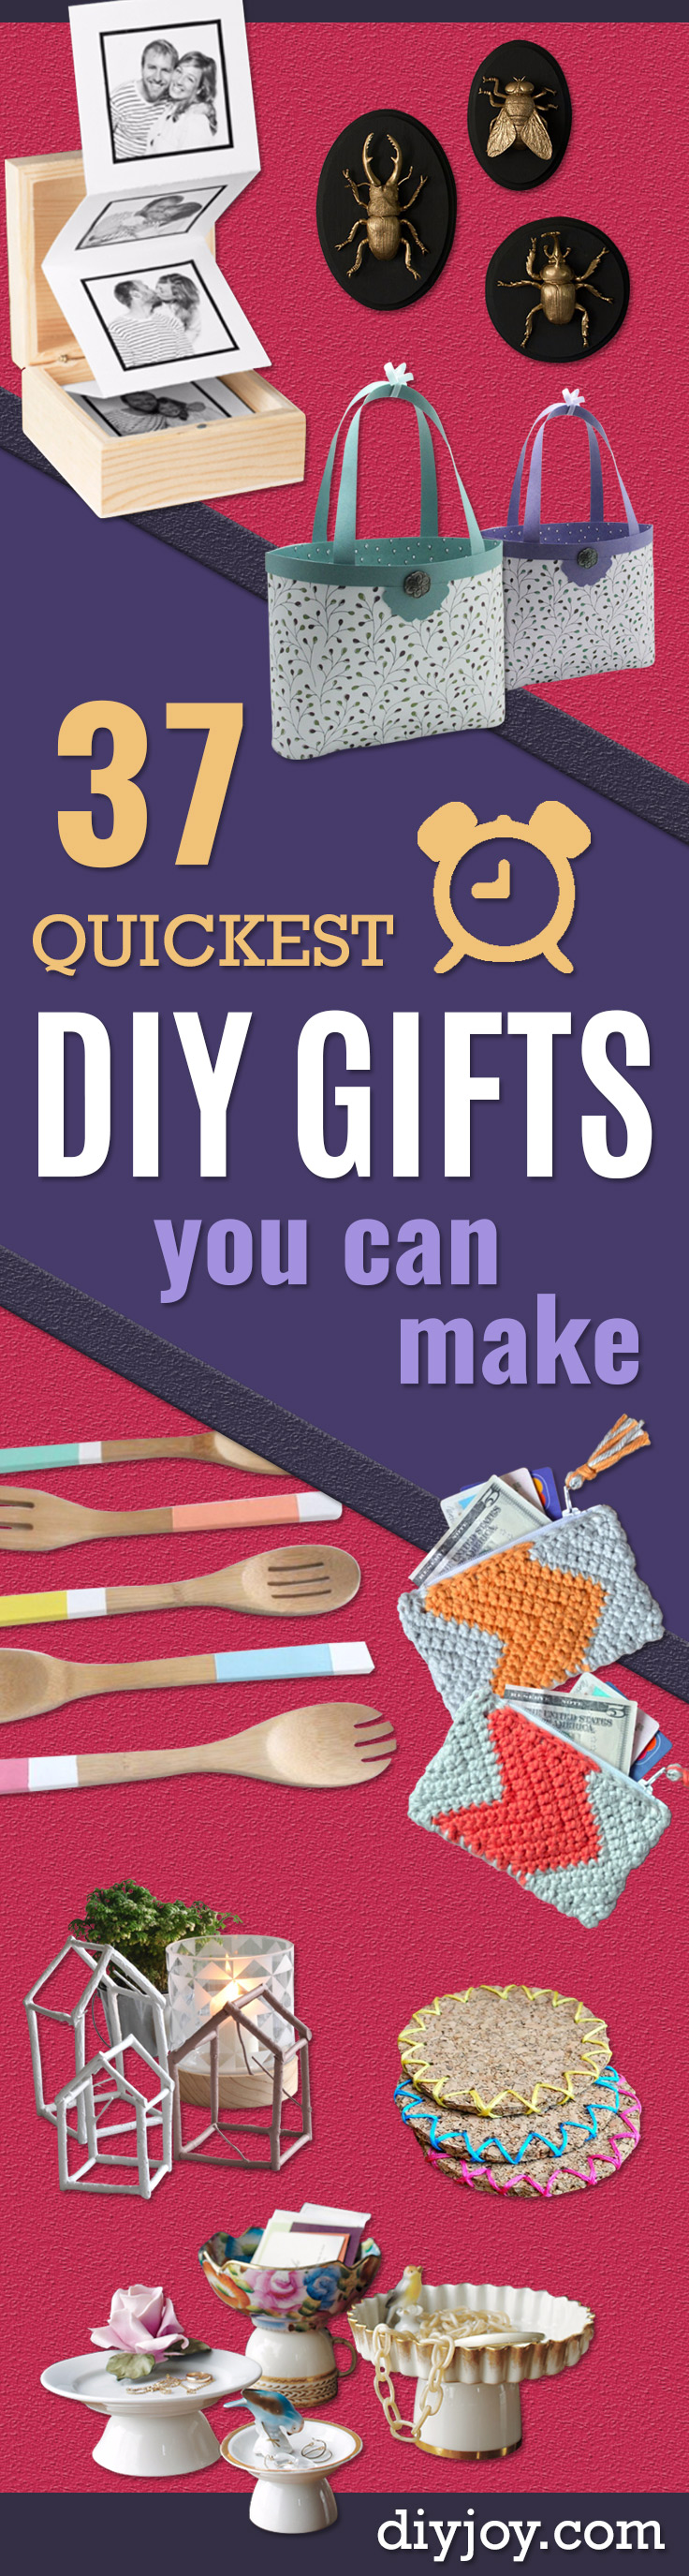 37 quickest diy gifts you can make for Last minute diy birthday gifts for dad